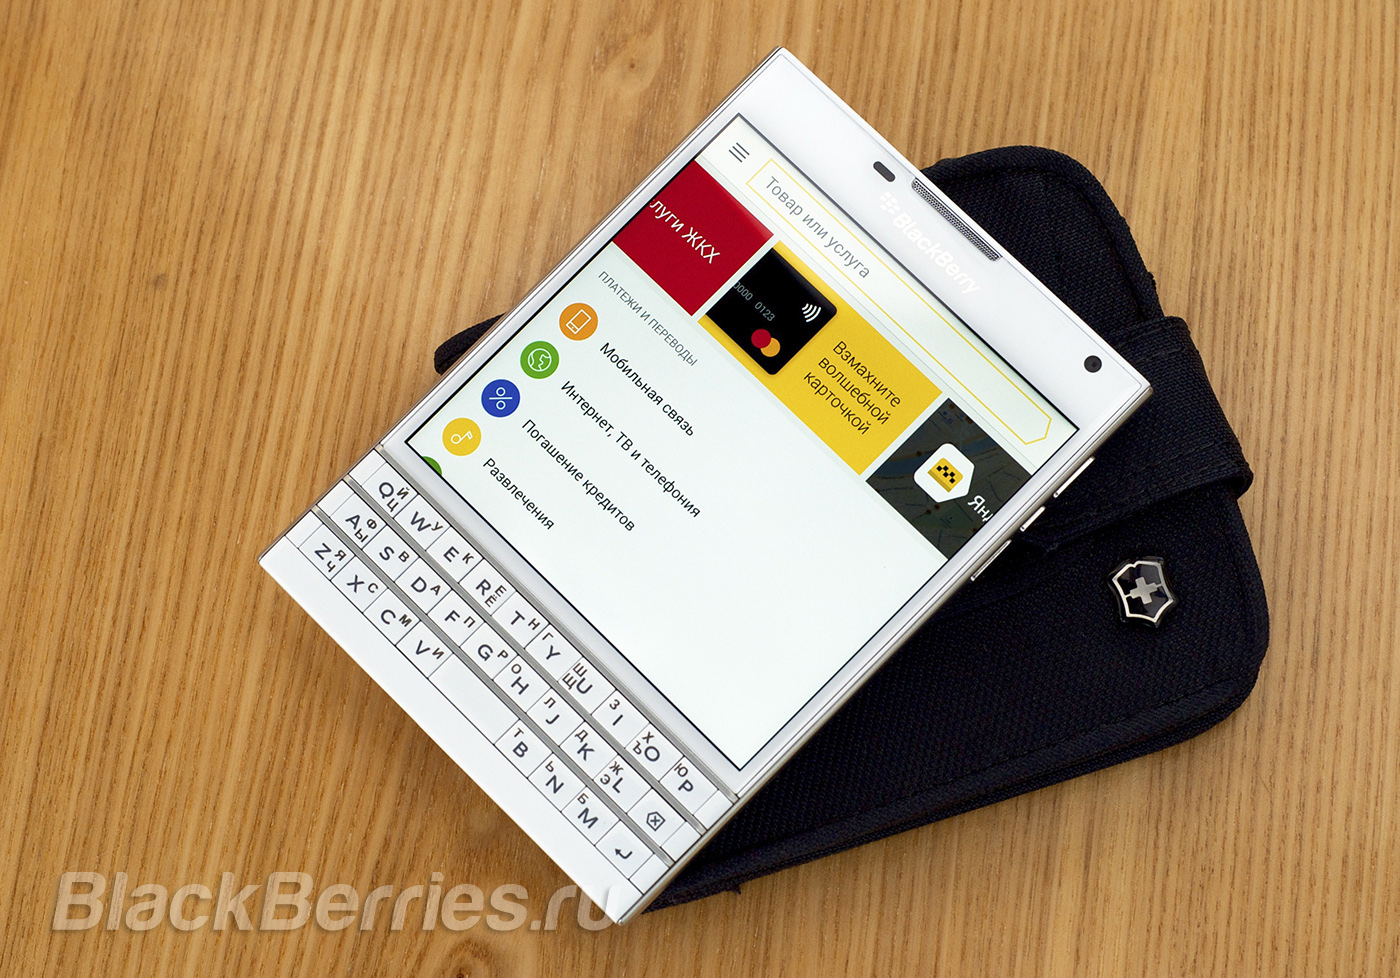 BlackBerry-Passport-App-23-05-26